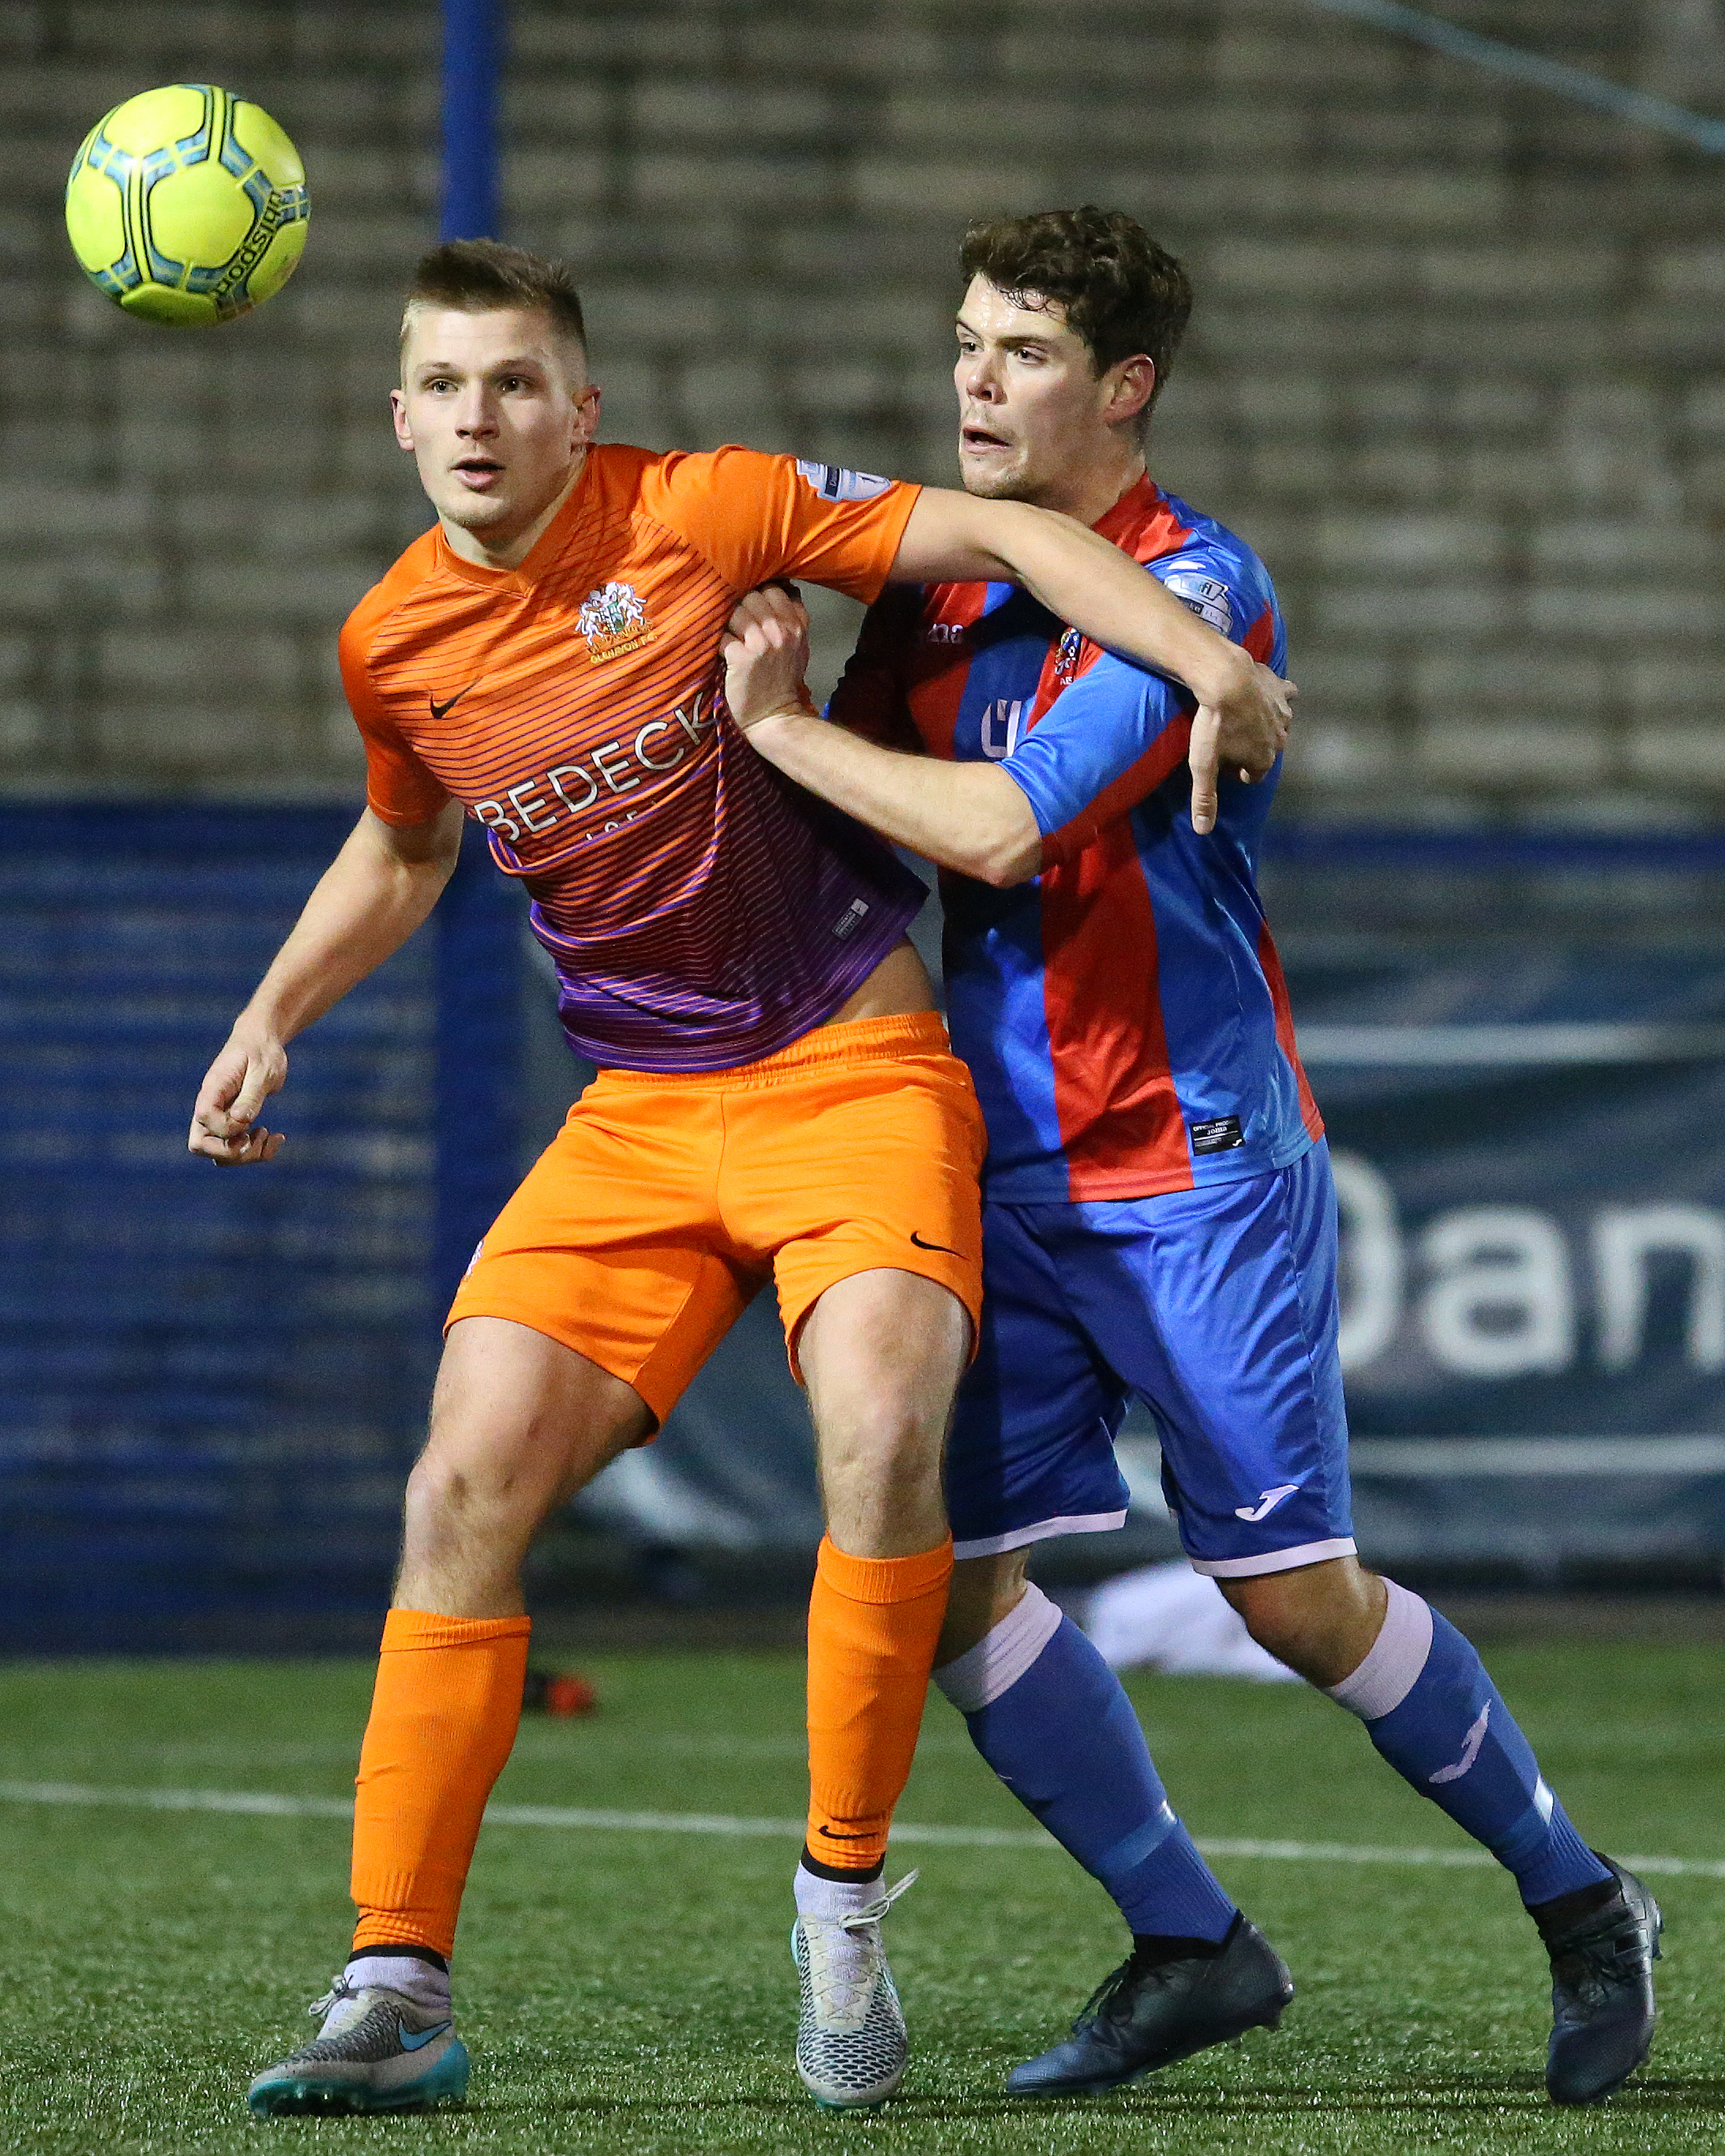 Preview: Ards v Glenavon (Tue)